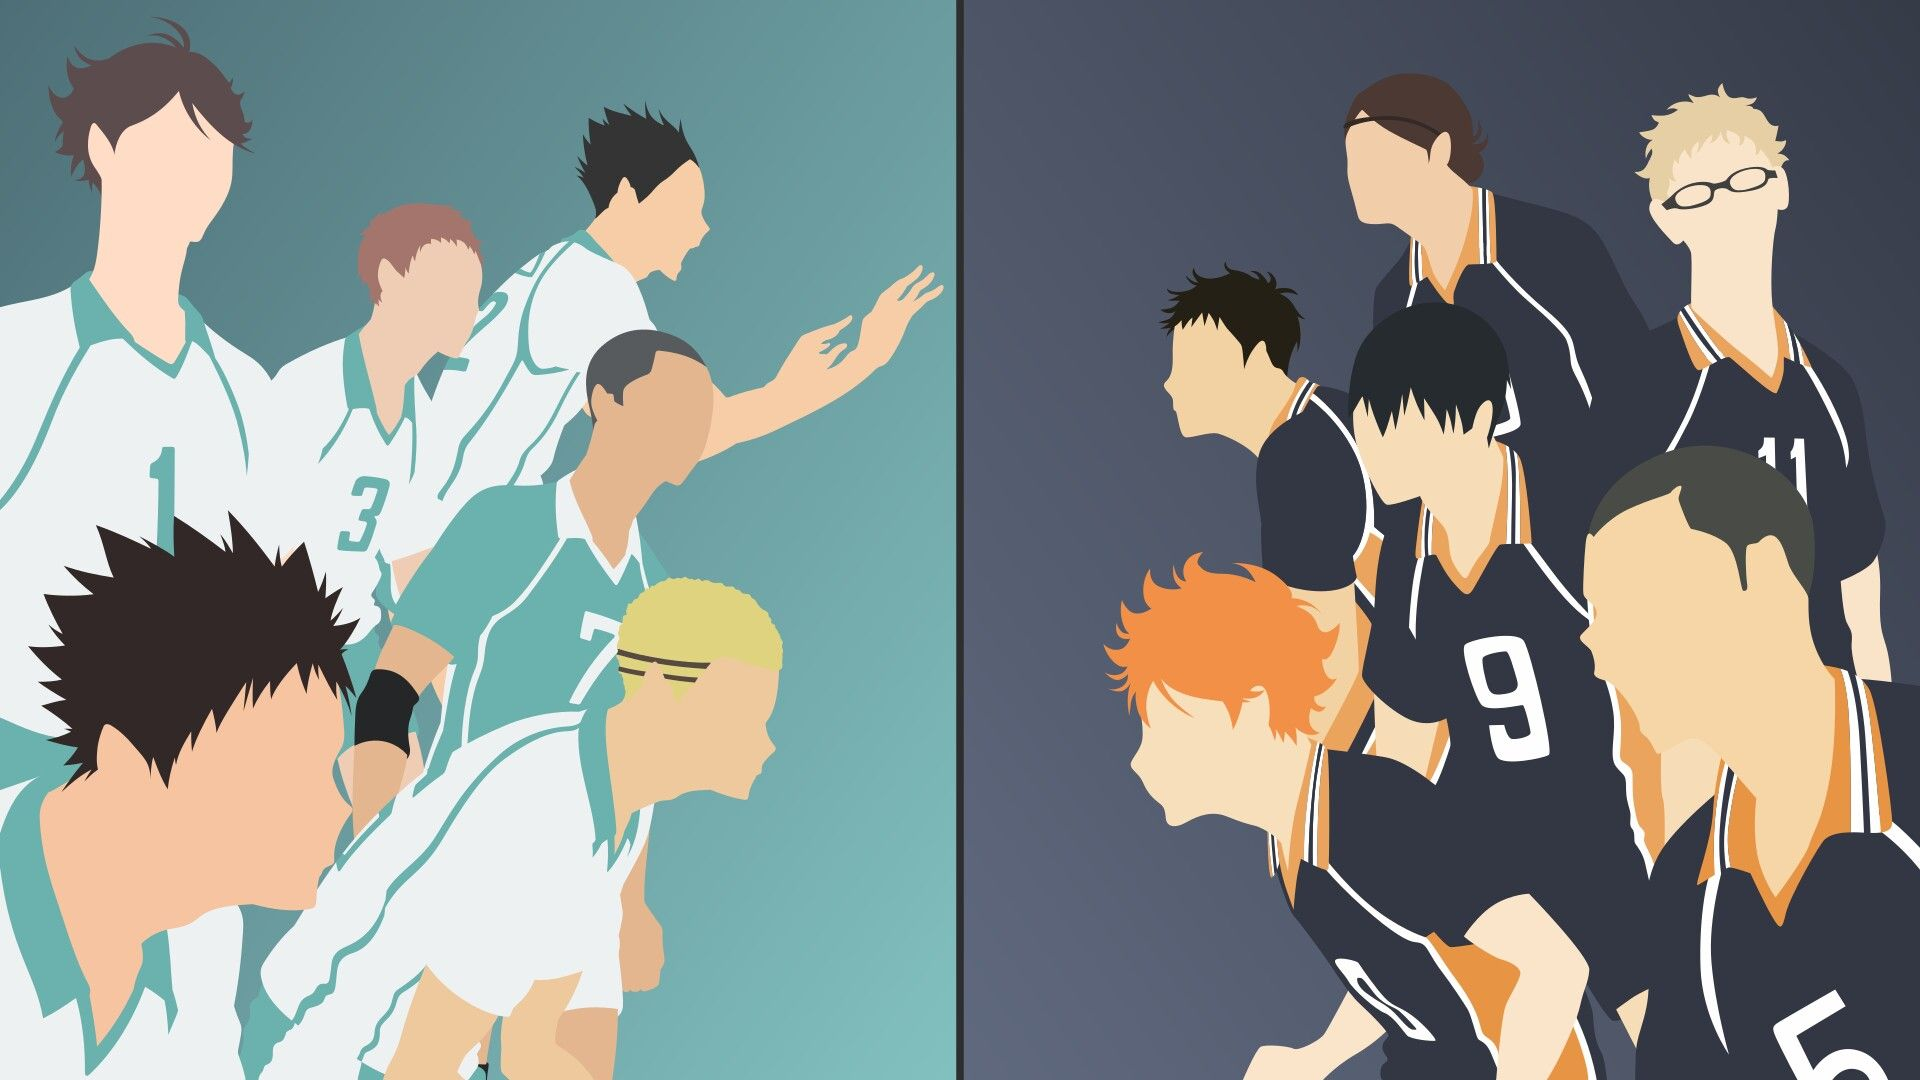 Pin By Chandra Widiat On No Face Anime Art Haikyuu Wallpaper Anime Canvas Anime Wallpaper Iphone